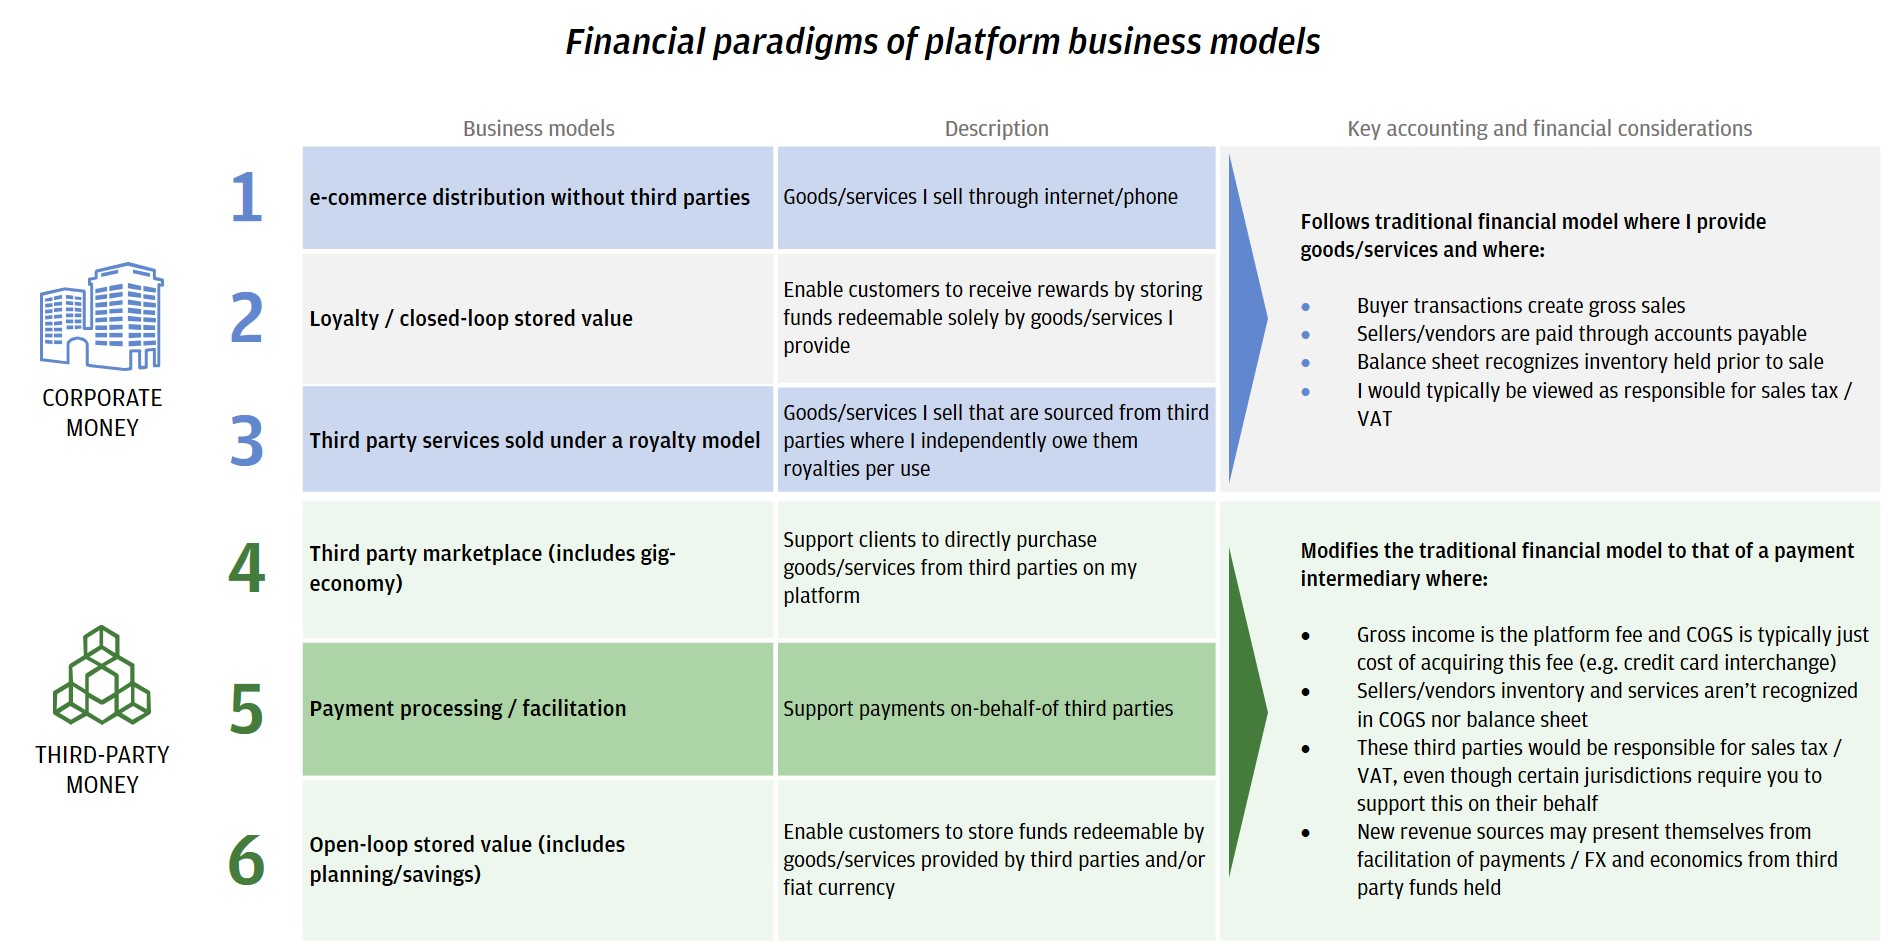 RISE PLATFORMS Exhibit 2 - Financial paradigms of platform business models